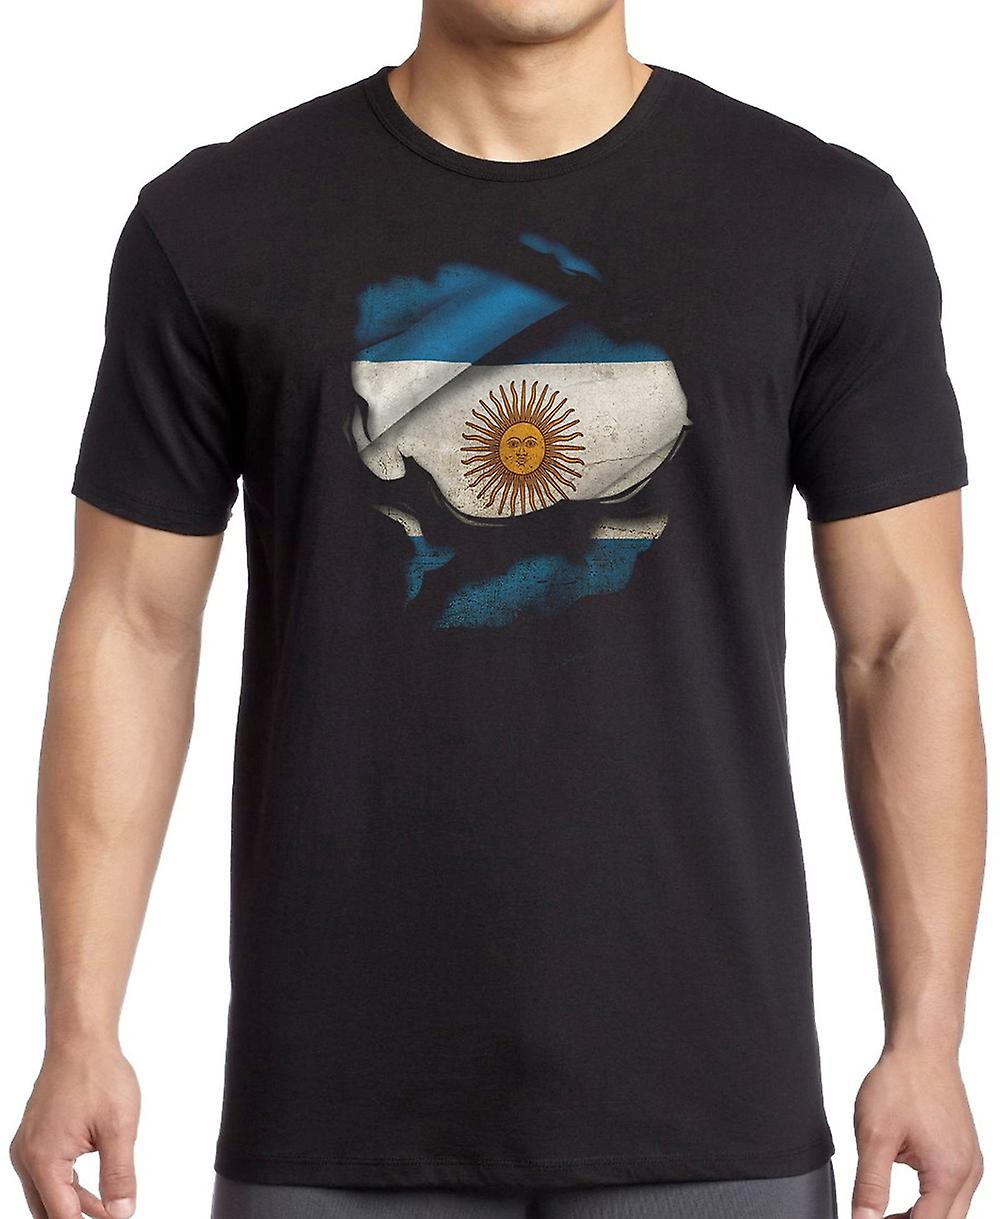 Argentinian Argentina Ripped Effect Under Shirt T Shirt